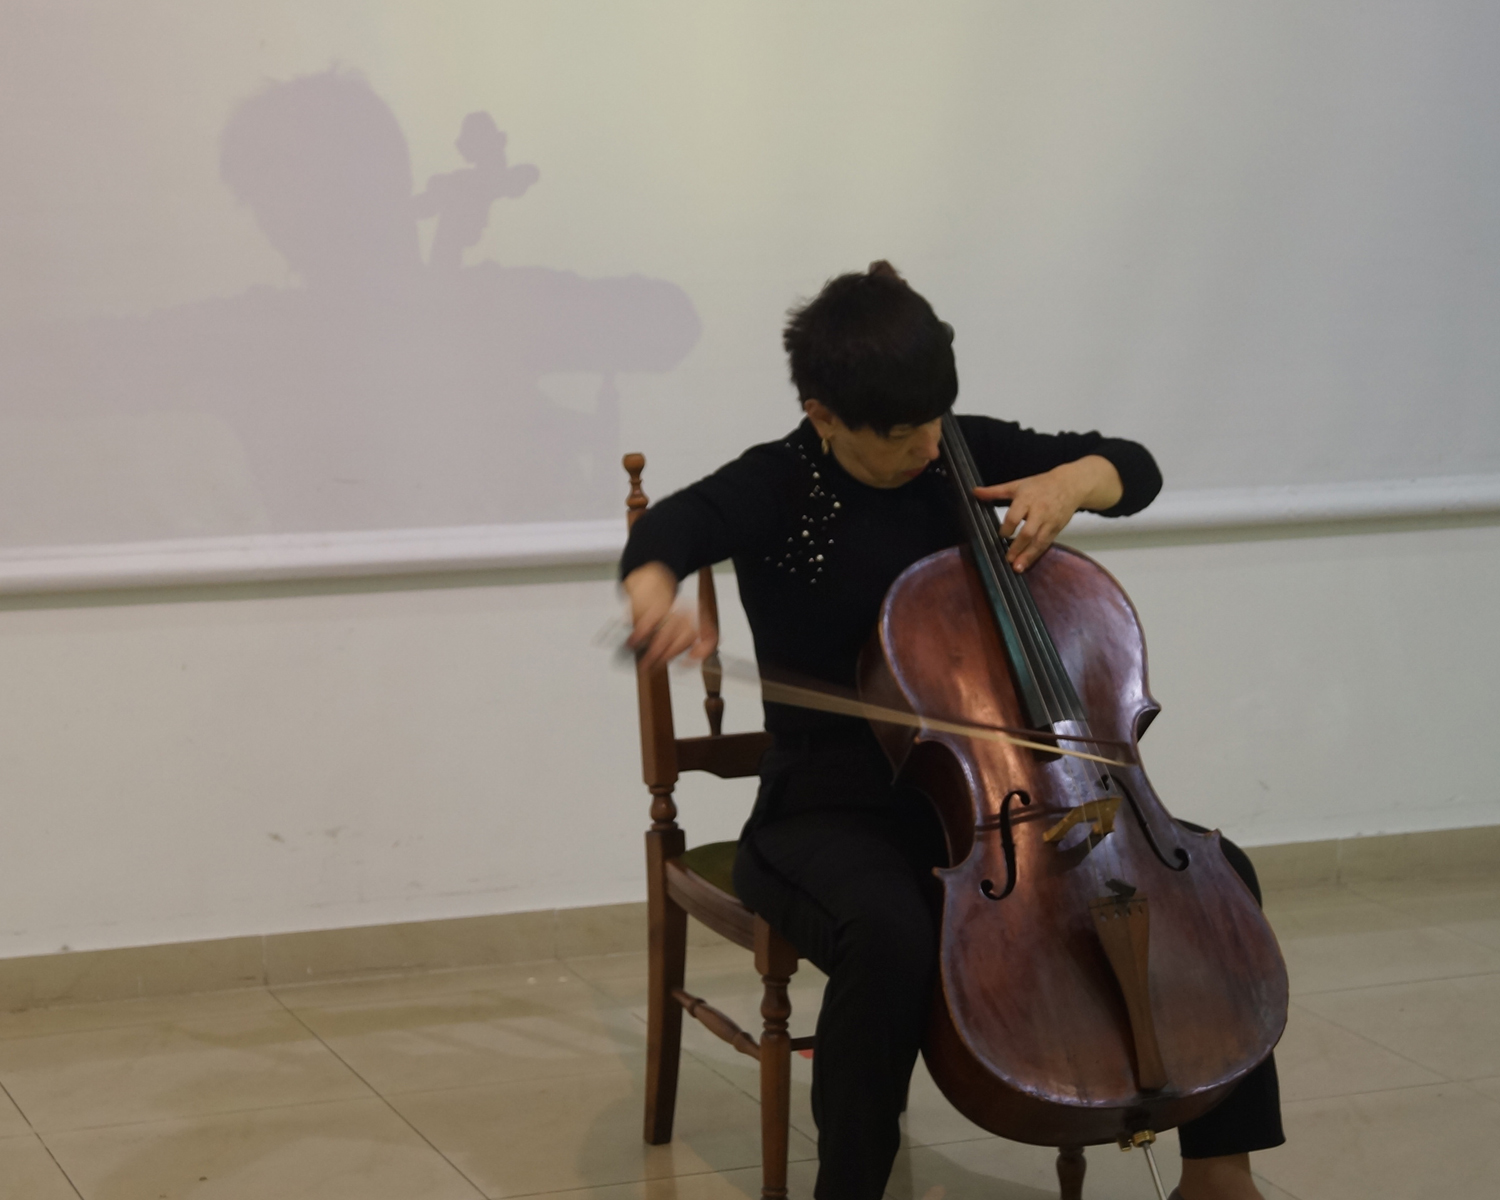 Ruzanna Abrahamyan - Professor at Yerevan State Conservatory after Komitas, musician, cellist